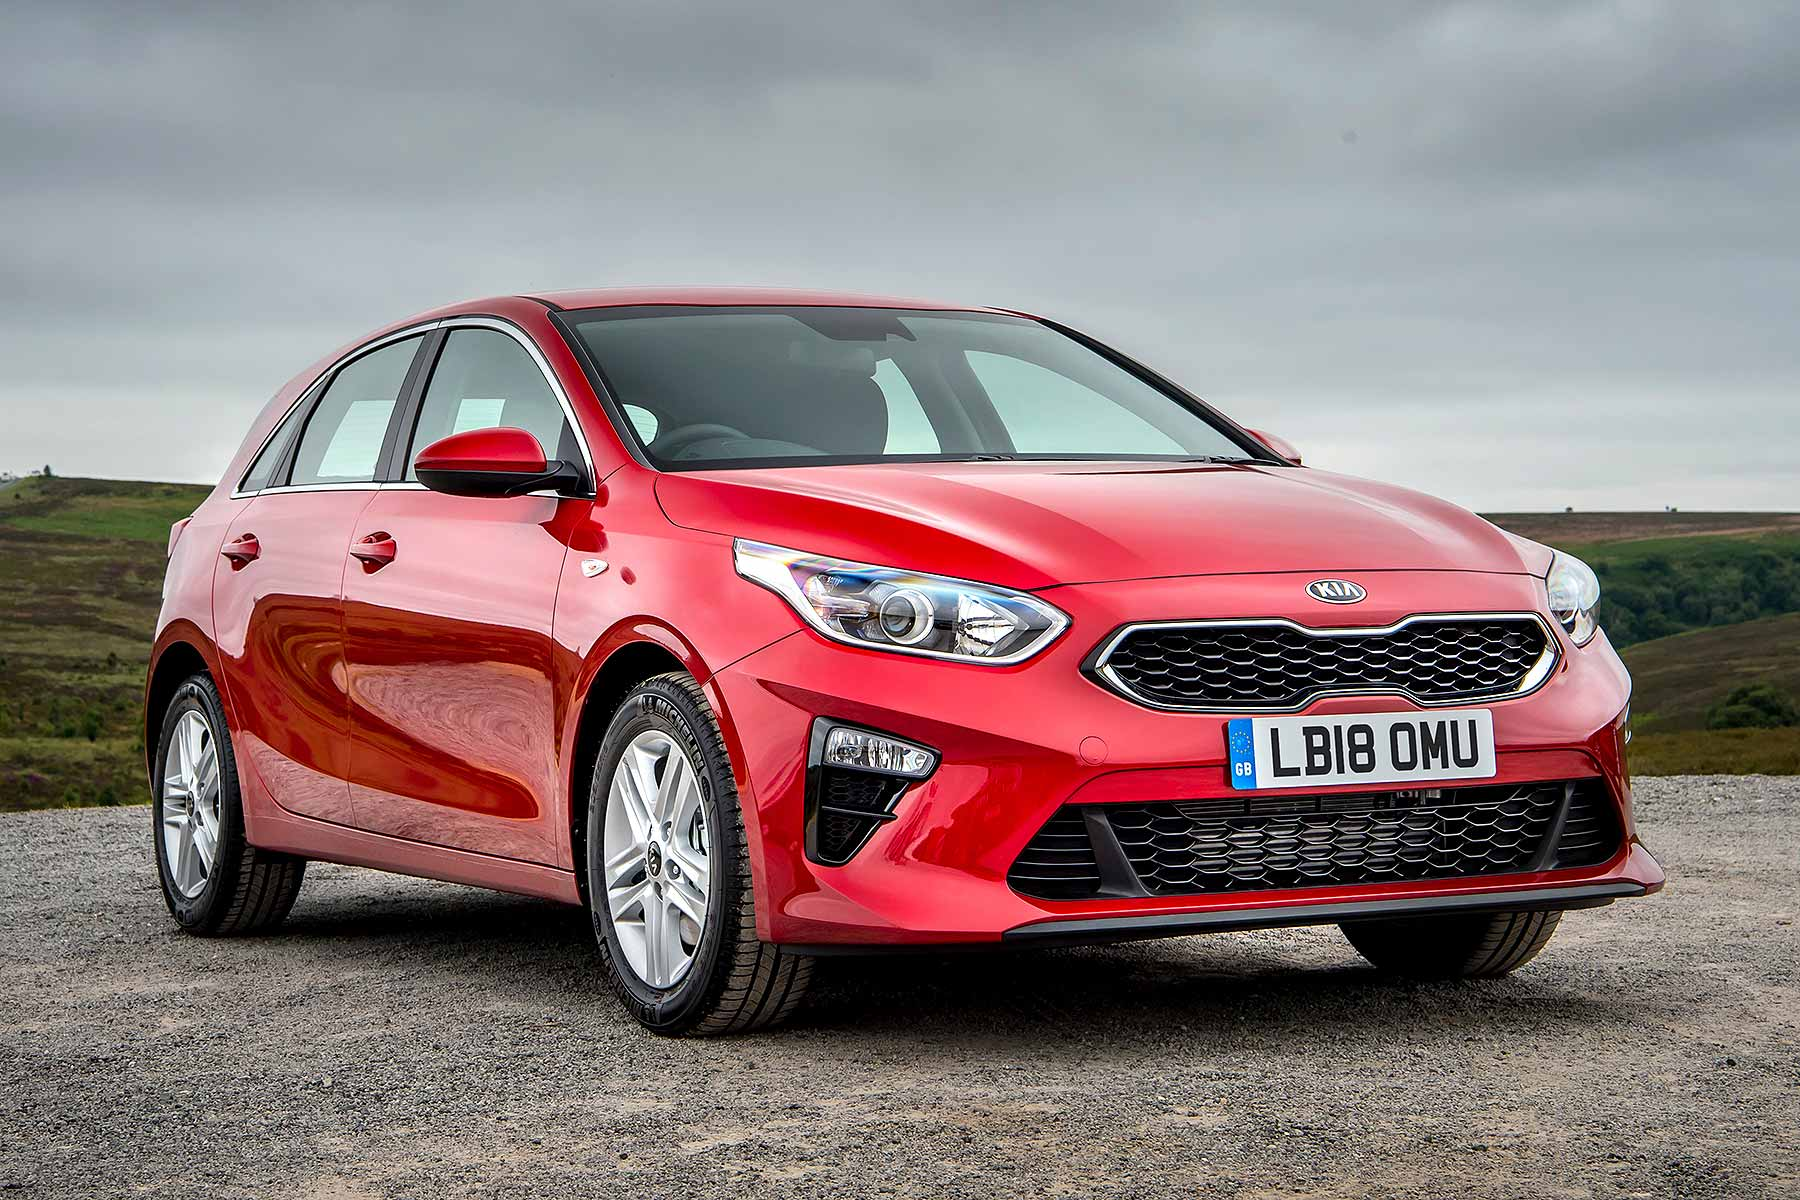 32 All New Best Kia Ceed 2019 Youtube New Review Redesign and Concept by Best Kia Ceed 2019 Youtube New Review